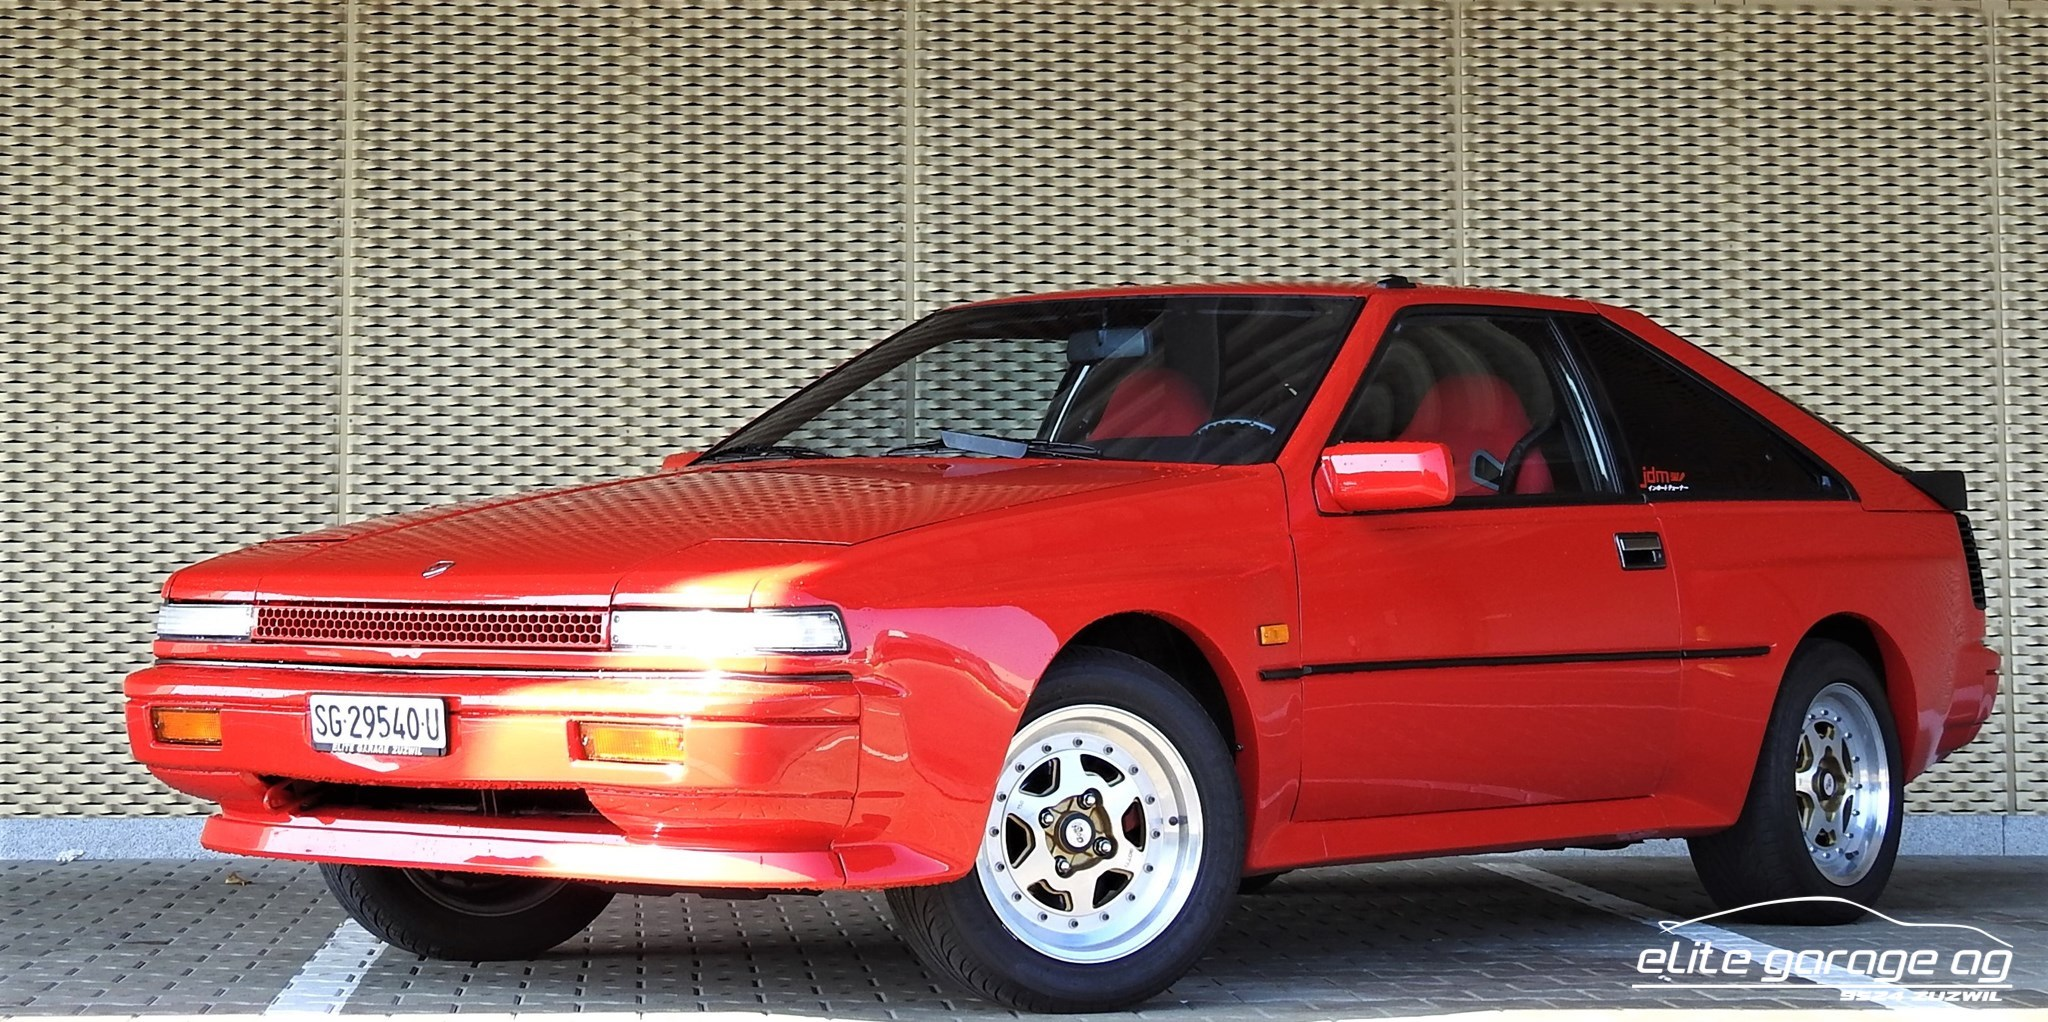 coupe Nissan Silvia 1.8 Turbo GRAND PRIX S12